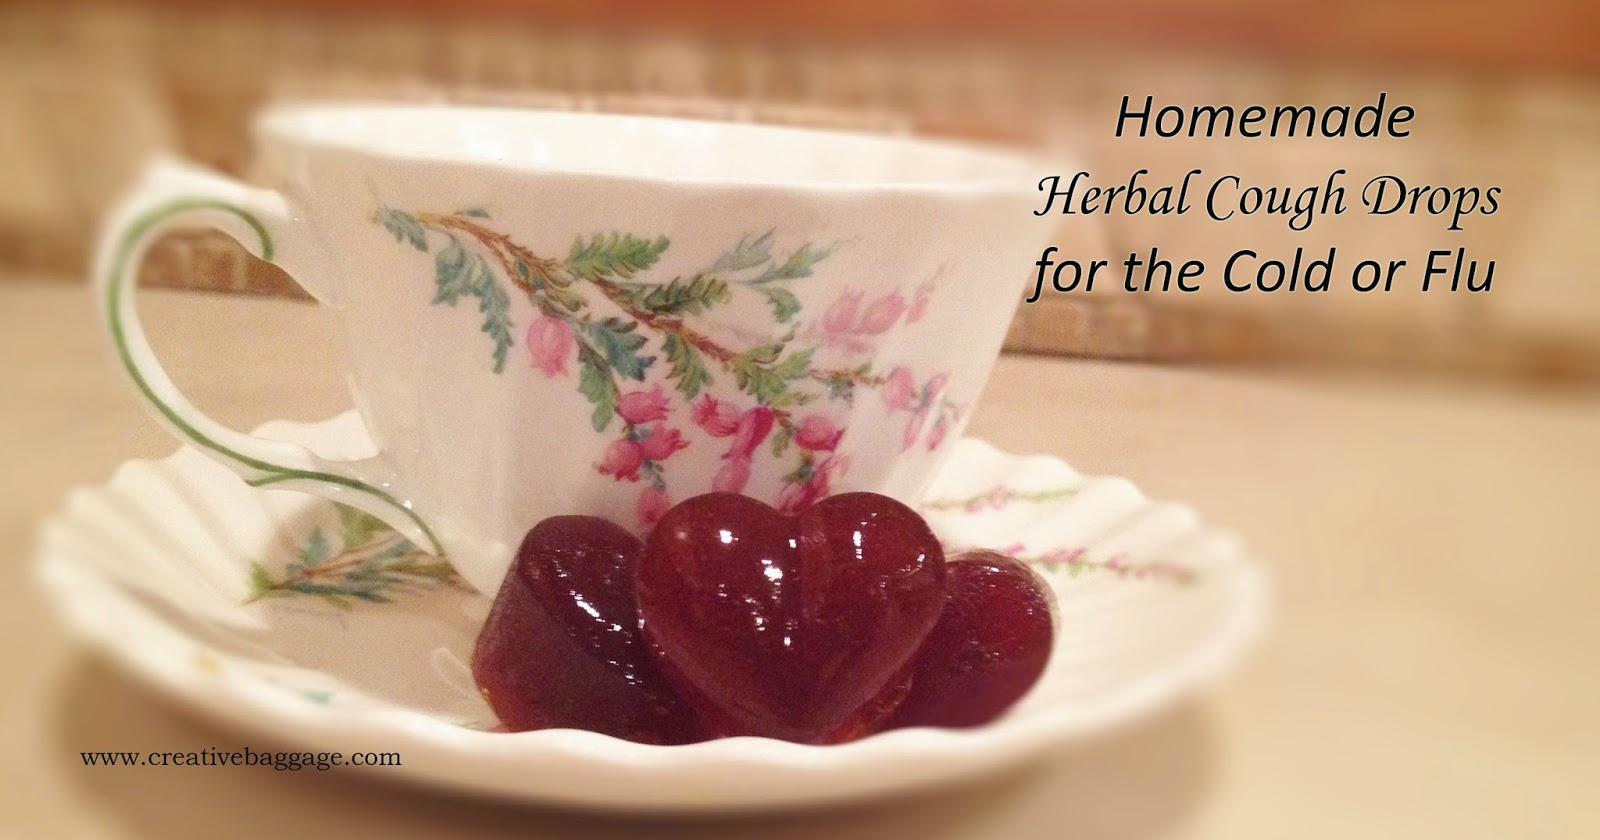 Homemade herbal cough drops for the cold or flu image